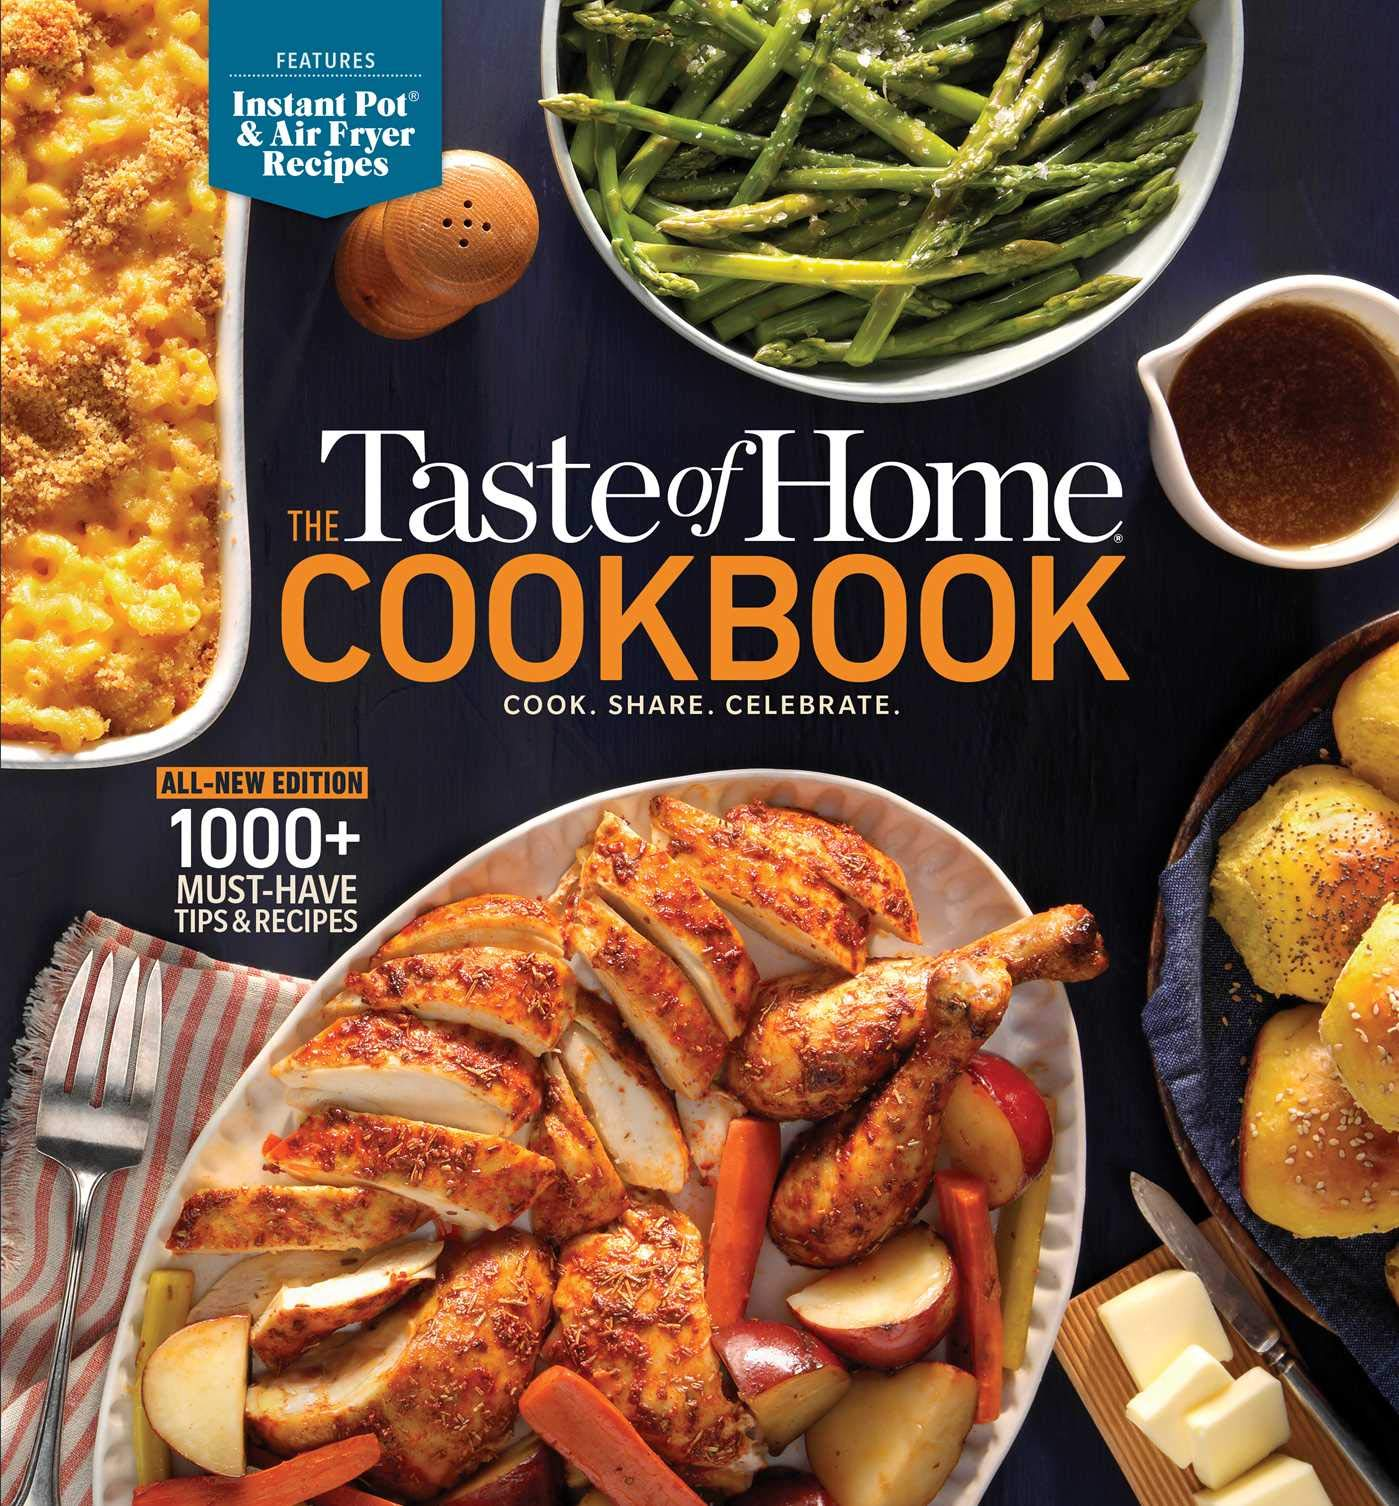 The Taste of Home Cookbook, 5th Edition: Cook.  Share.  Celebrate. by Reader's Digest/Taste of Home